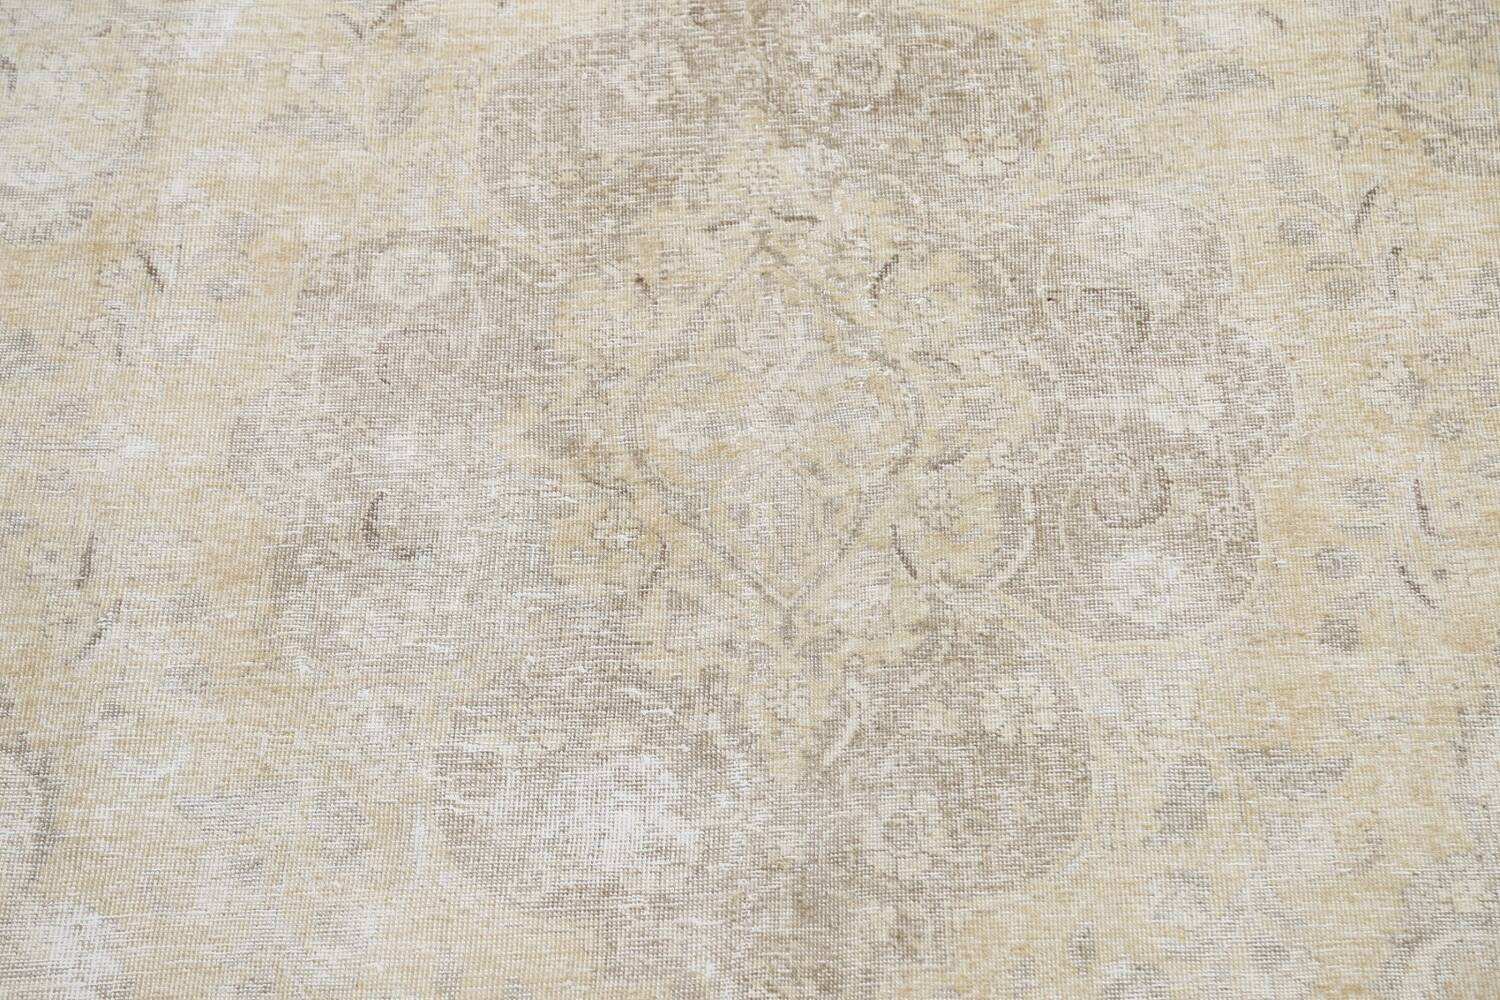 Muted Distressed Tabriz Persian Area Rug 8x12 image 4